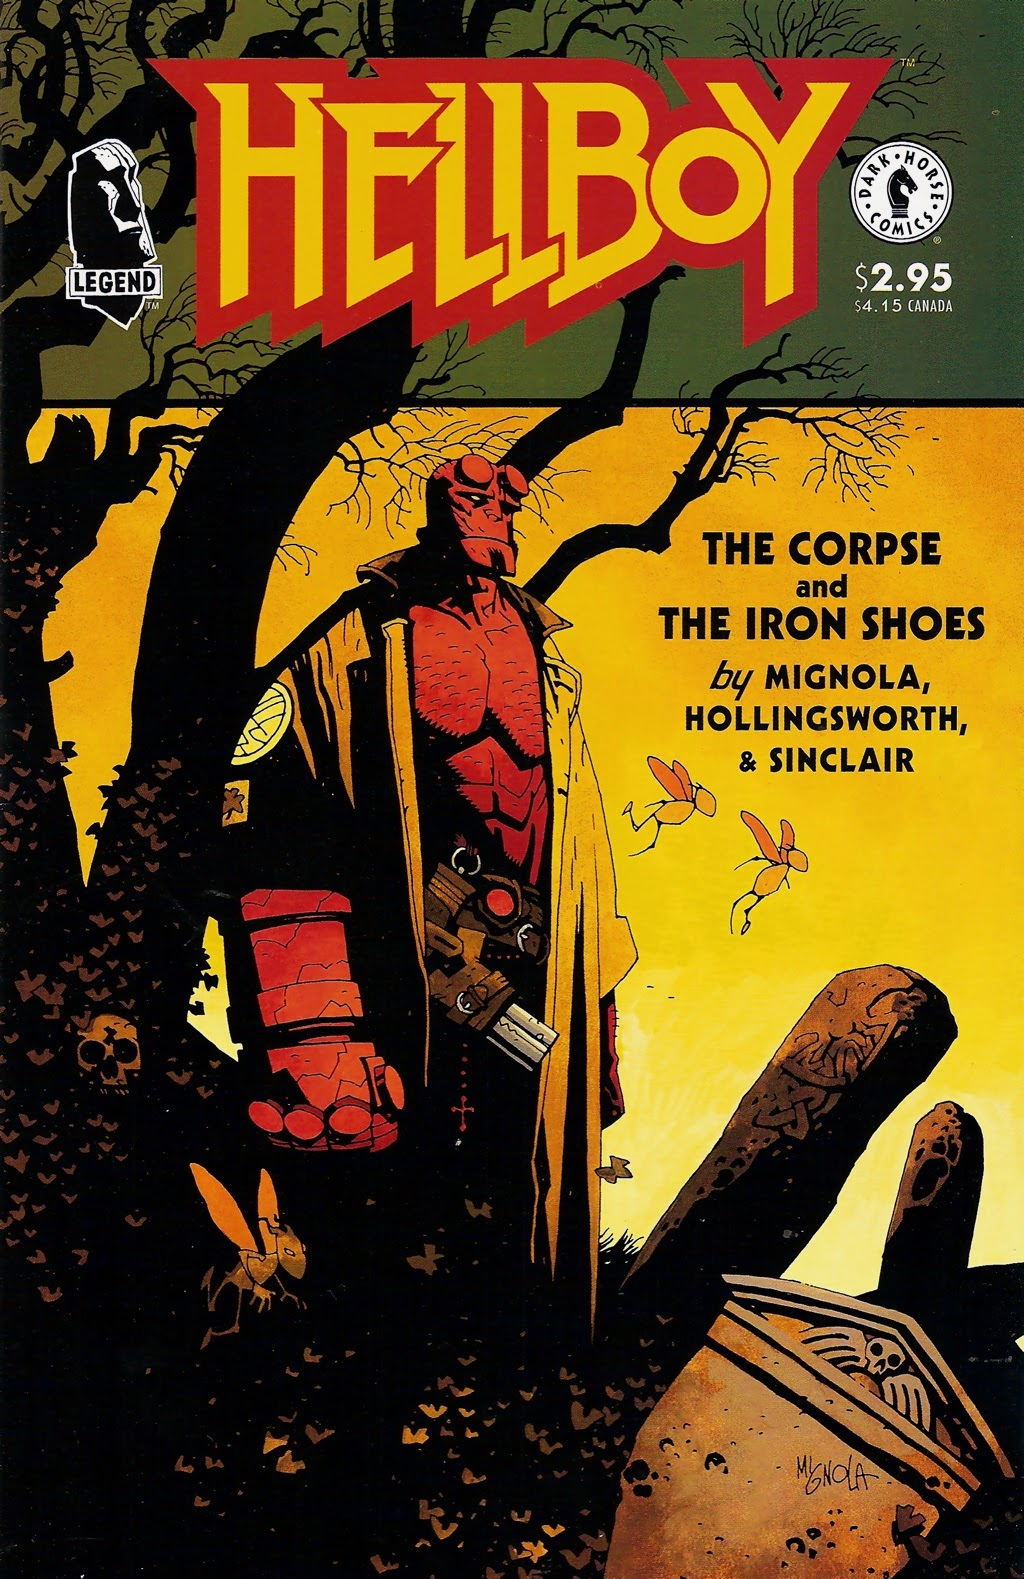 Hellboy standing amidst old graves including one large oblong stone